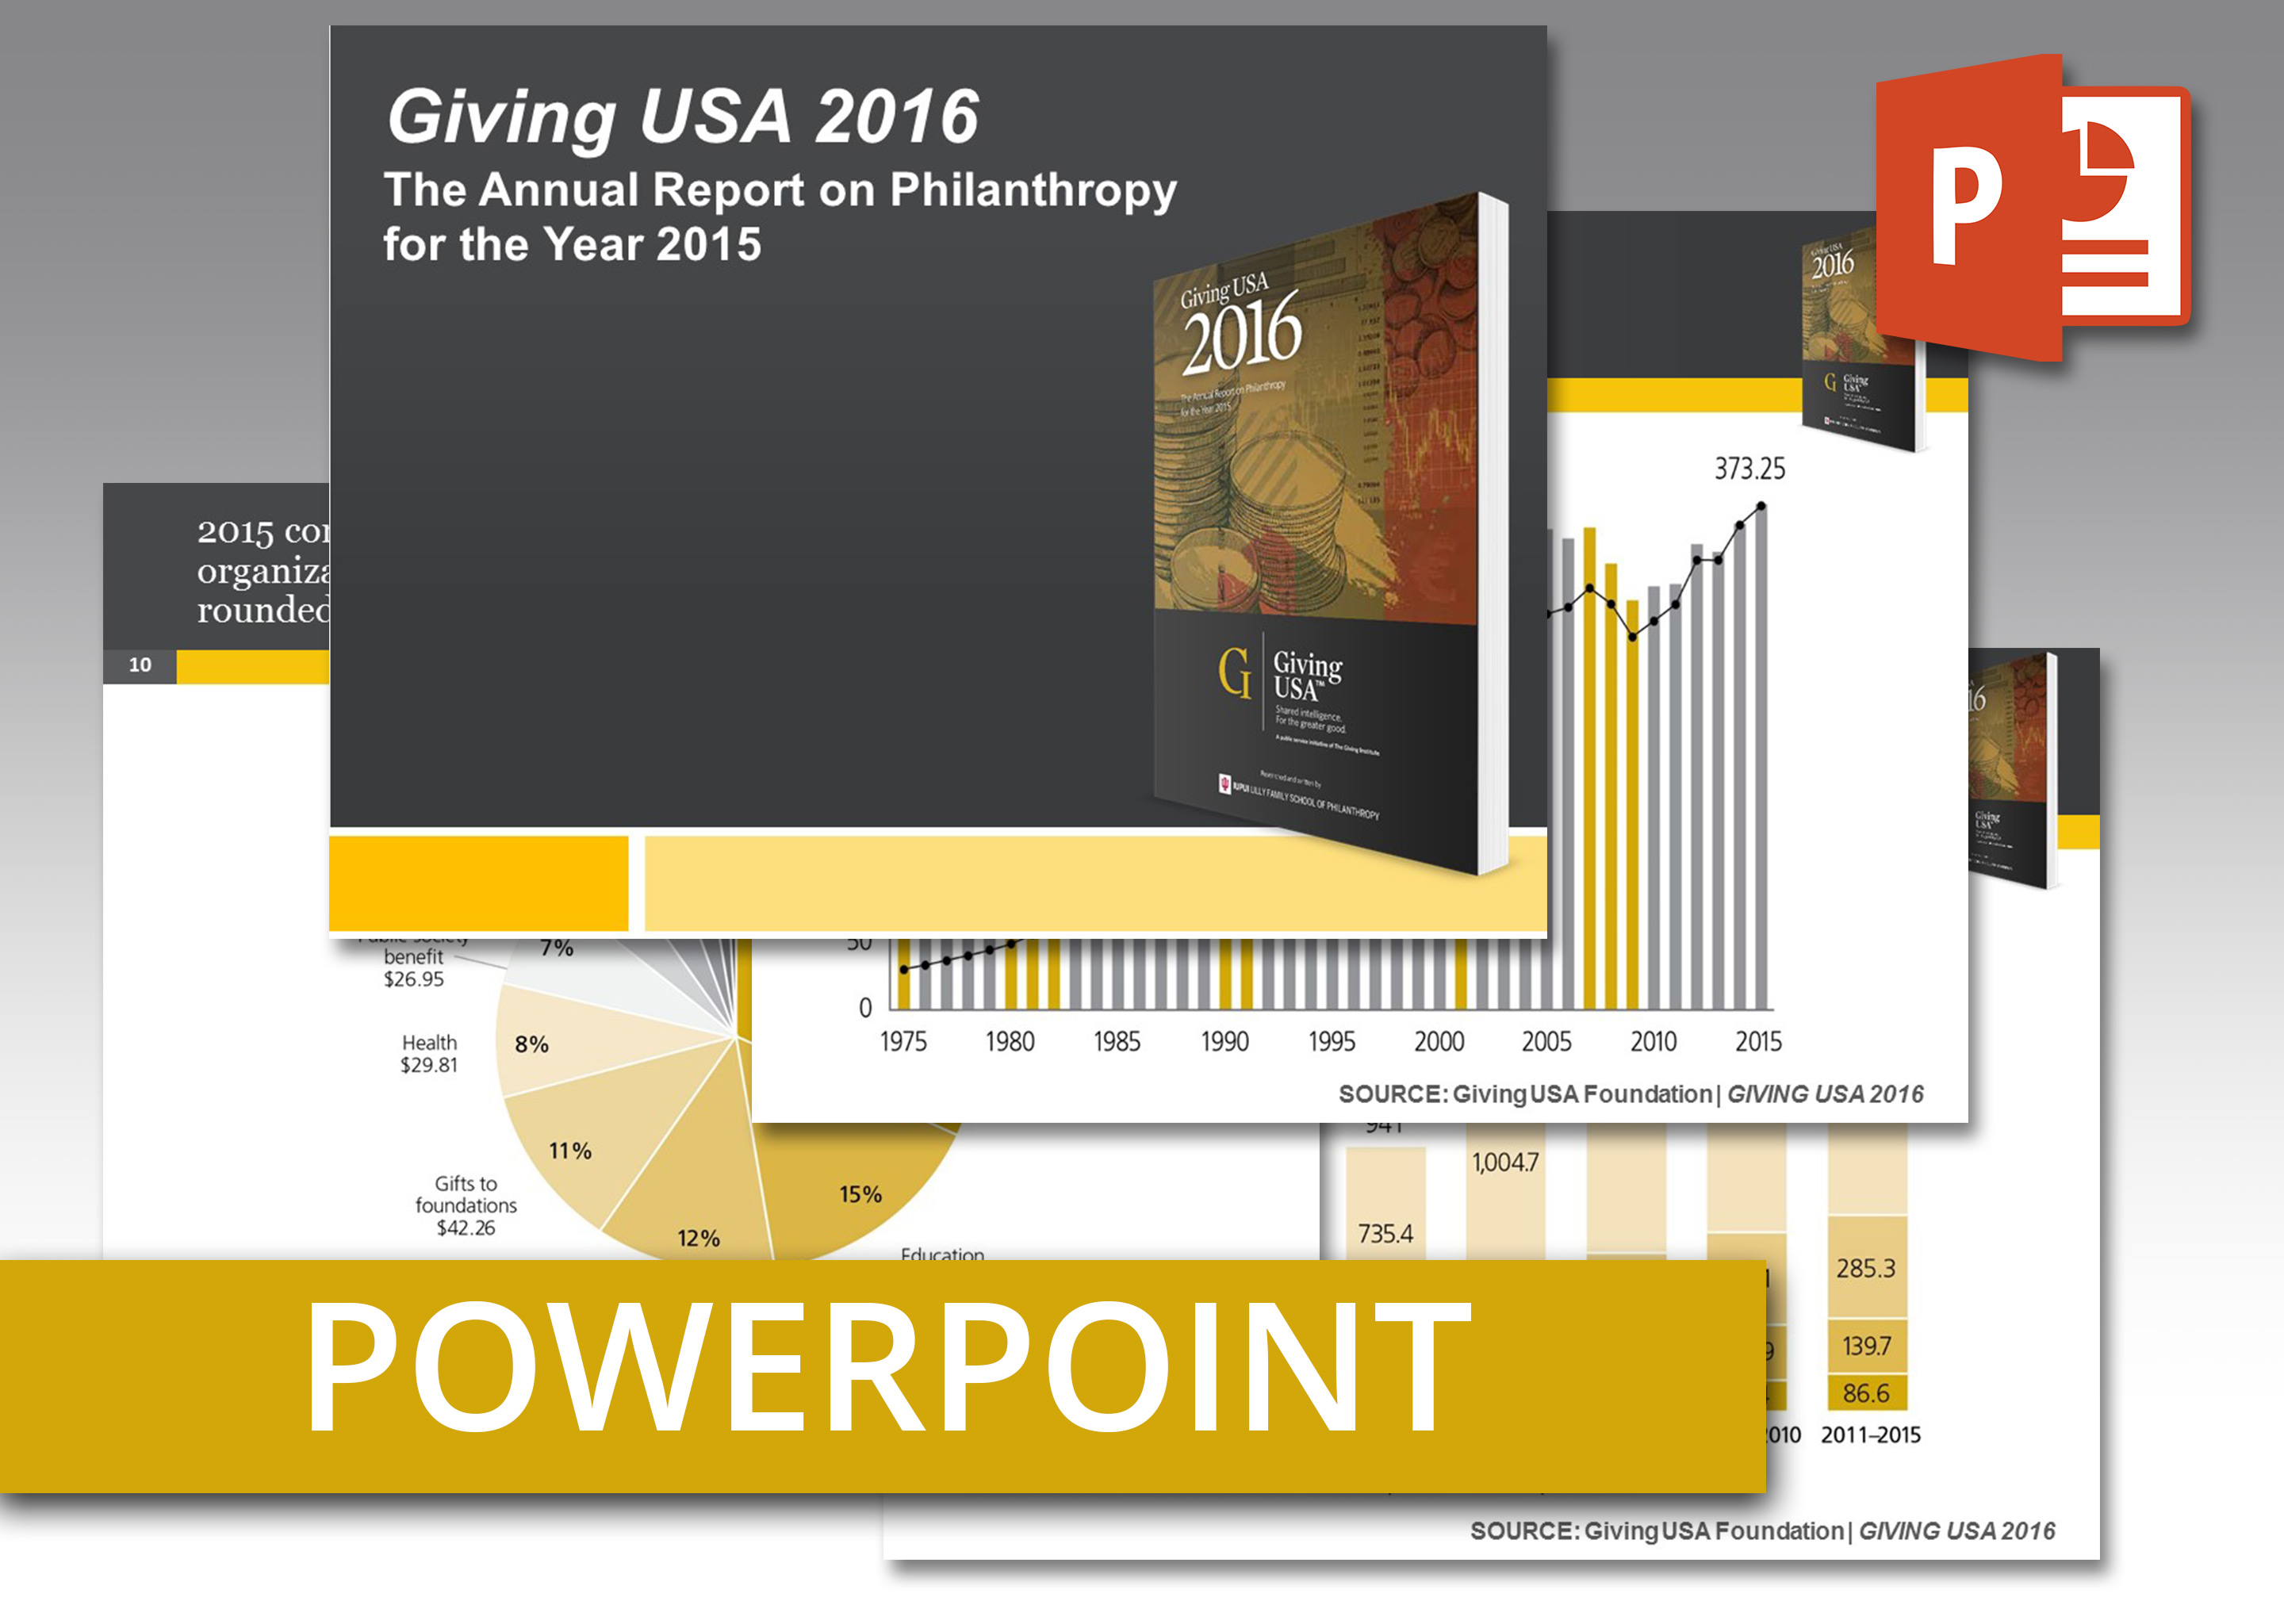 Coolmathgamesus  Prepossessing Giving Usa  Powerpoint An Easytouse Presentation Of Report  With Extraordinary Giving Usa  Powerpoint An Easytouse Presentation Of Report Findings Including Talking Points With Cool Download Powerpoint Mac Free Also Report Writing Powerpoint Presentation In Addition Powerpoint Presentation Maker Free Download And Presentation Examples On Powerpoint As Well As Powerpoint Reader App Additionally Powerpoint Presentation Effects From Givingusaorg With Coolmathgamesus  Extraordinary Giving Usa  Powerpoint An Easytouse Presentation Of Report  With Cool Giving Usa  Powerpoint An Easytouse Presentation Of Report Findings Including Talking Points And Prepossessing Download Powerpoint Mac Free Also Report Writing Powerpoint Presentation In Addition Powerpoint Presentation Maker Free Download From Givingusaorg